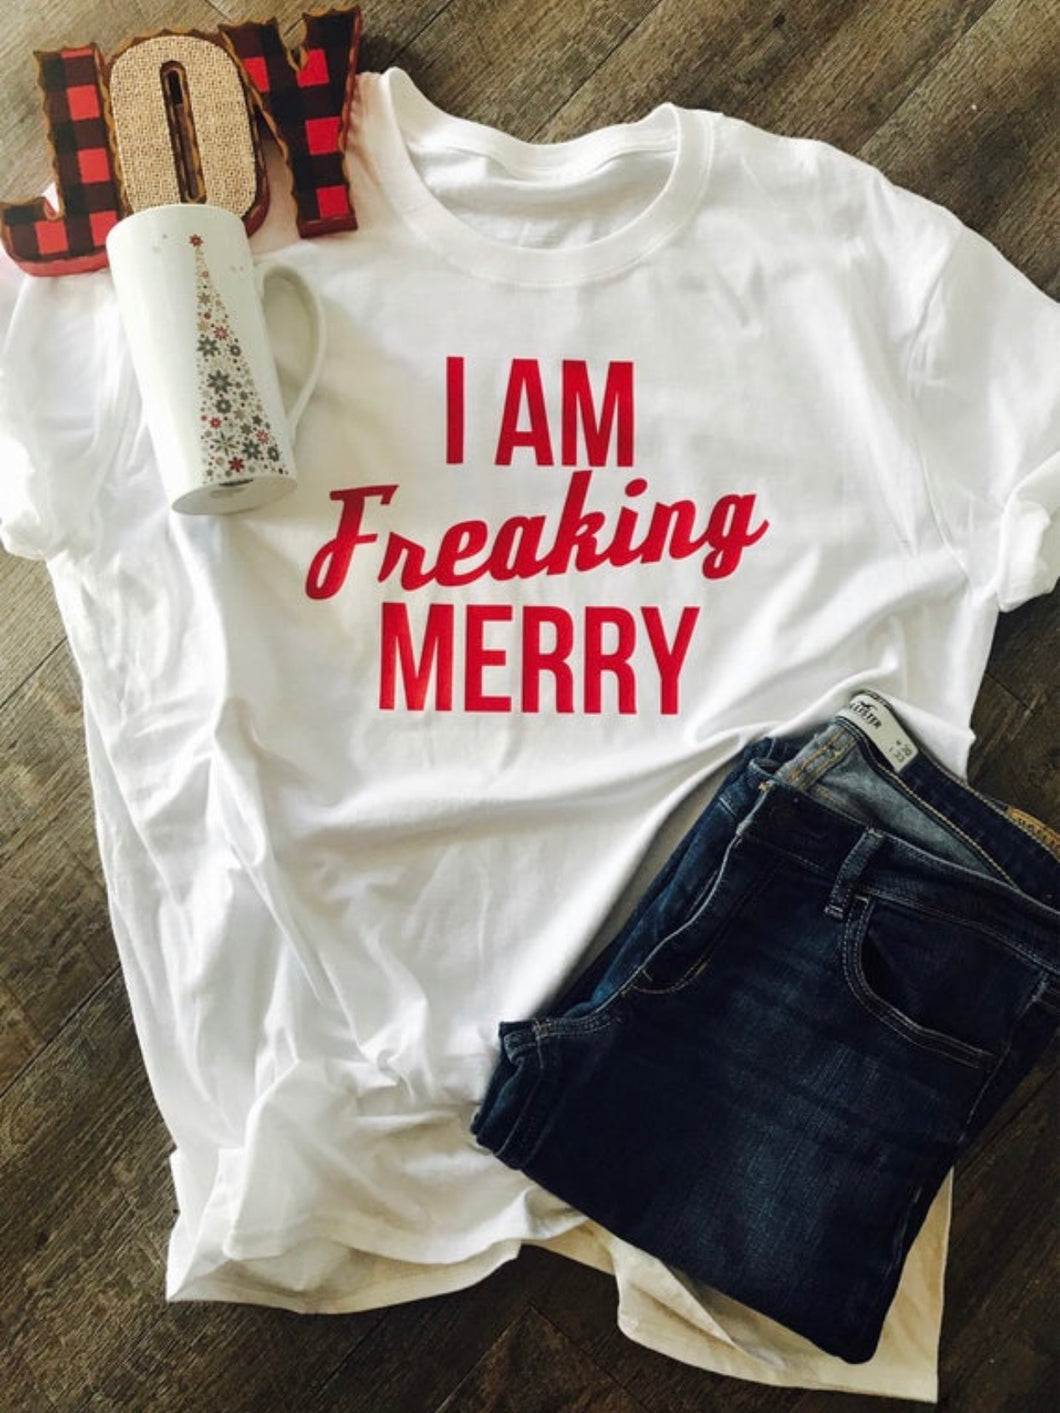 I am freaking merry funny christmas shirt. Gift. Bella canvas. Christmas gift. Holiday shirt. - Mavictoria Designs Hot Press Express